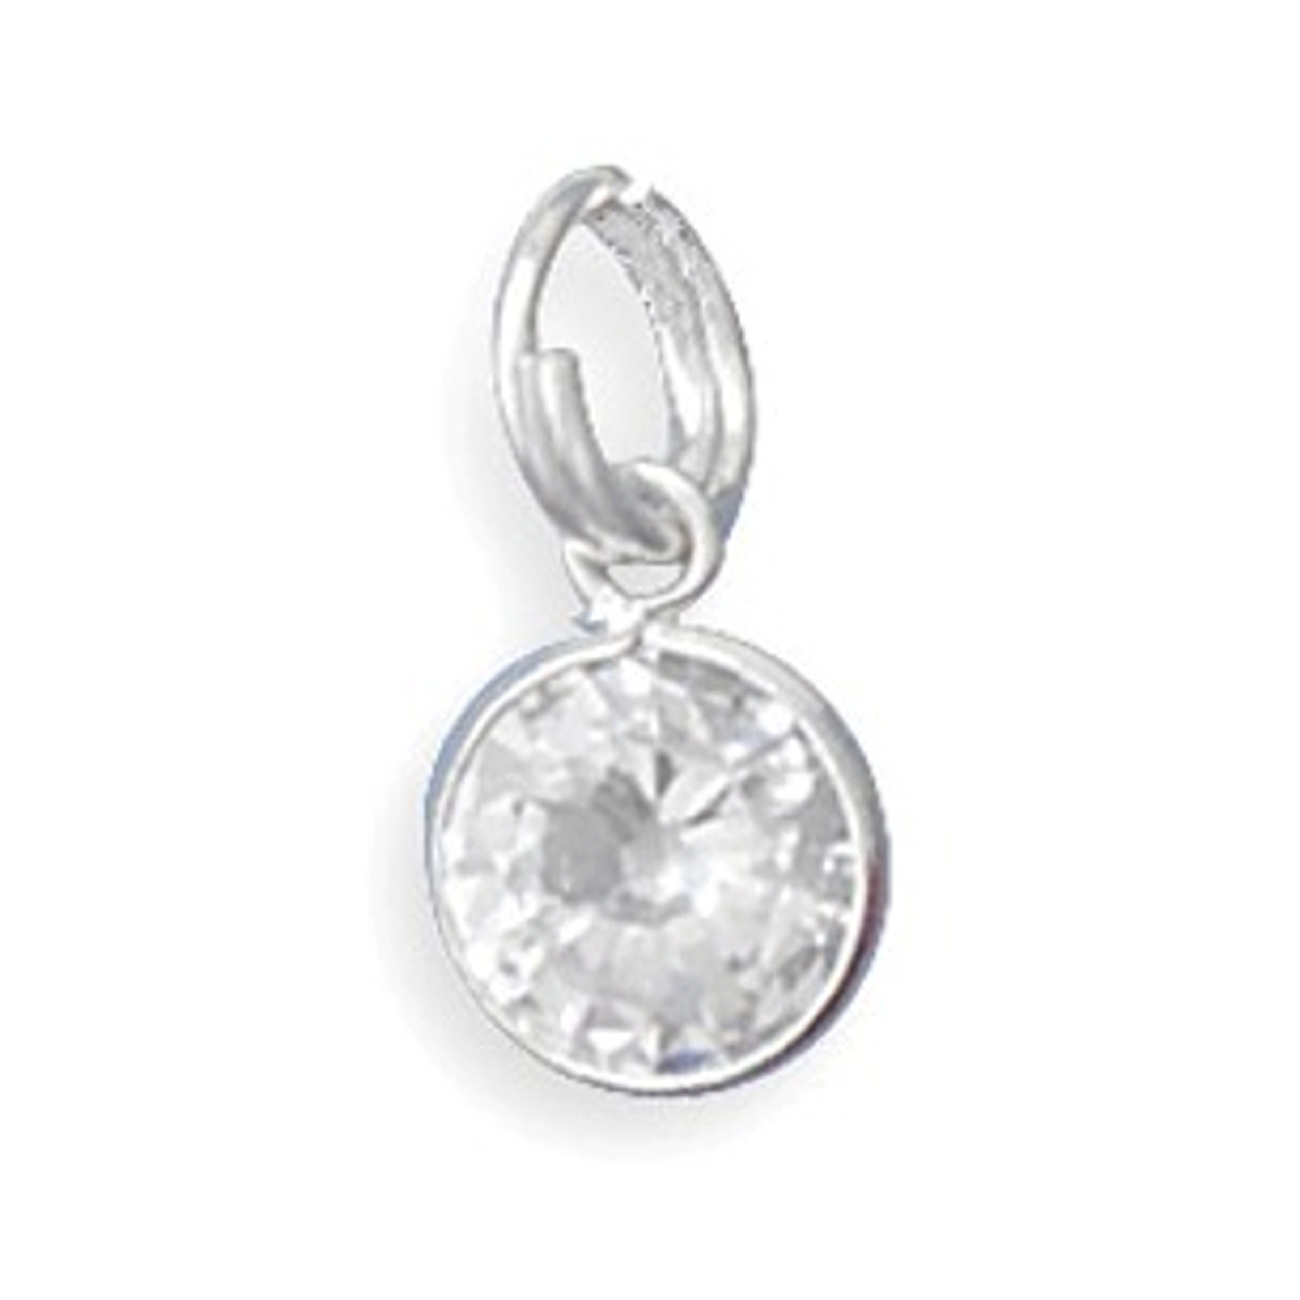 8mm Clear Round Cubic Zirconia Sparkly Charm